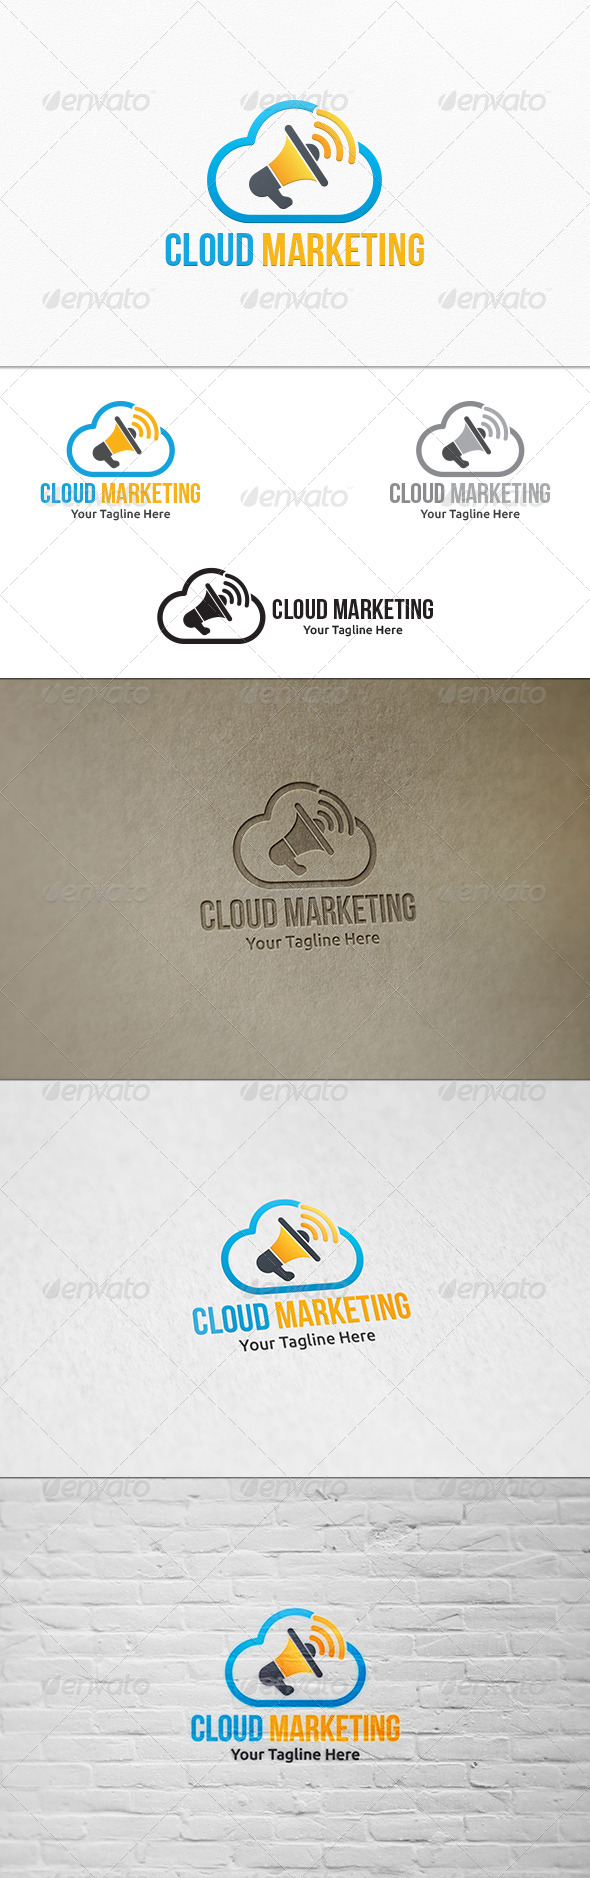 Cloud Marketing Logo Template